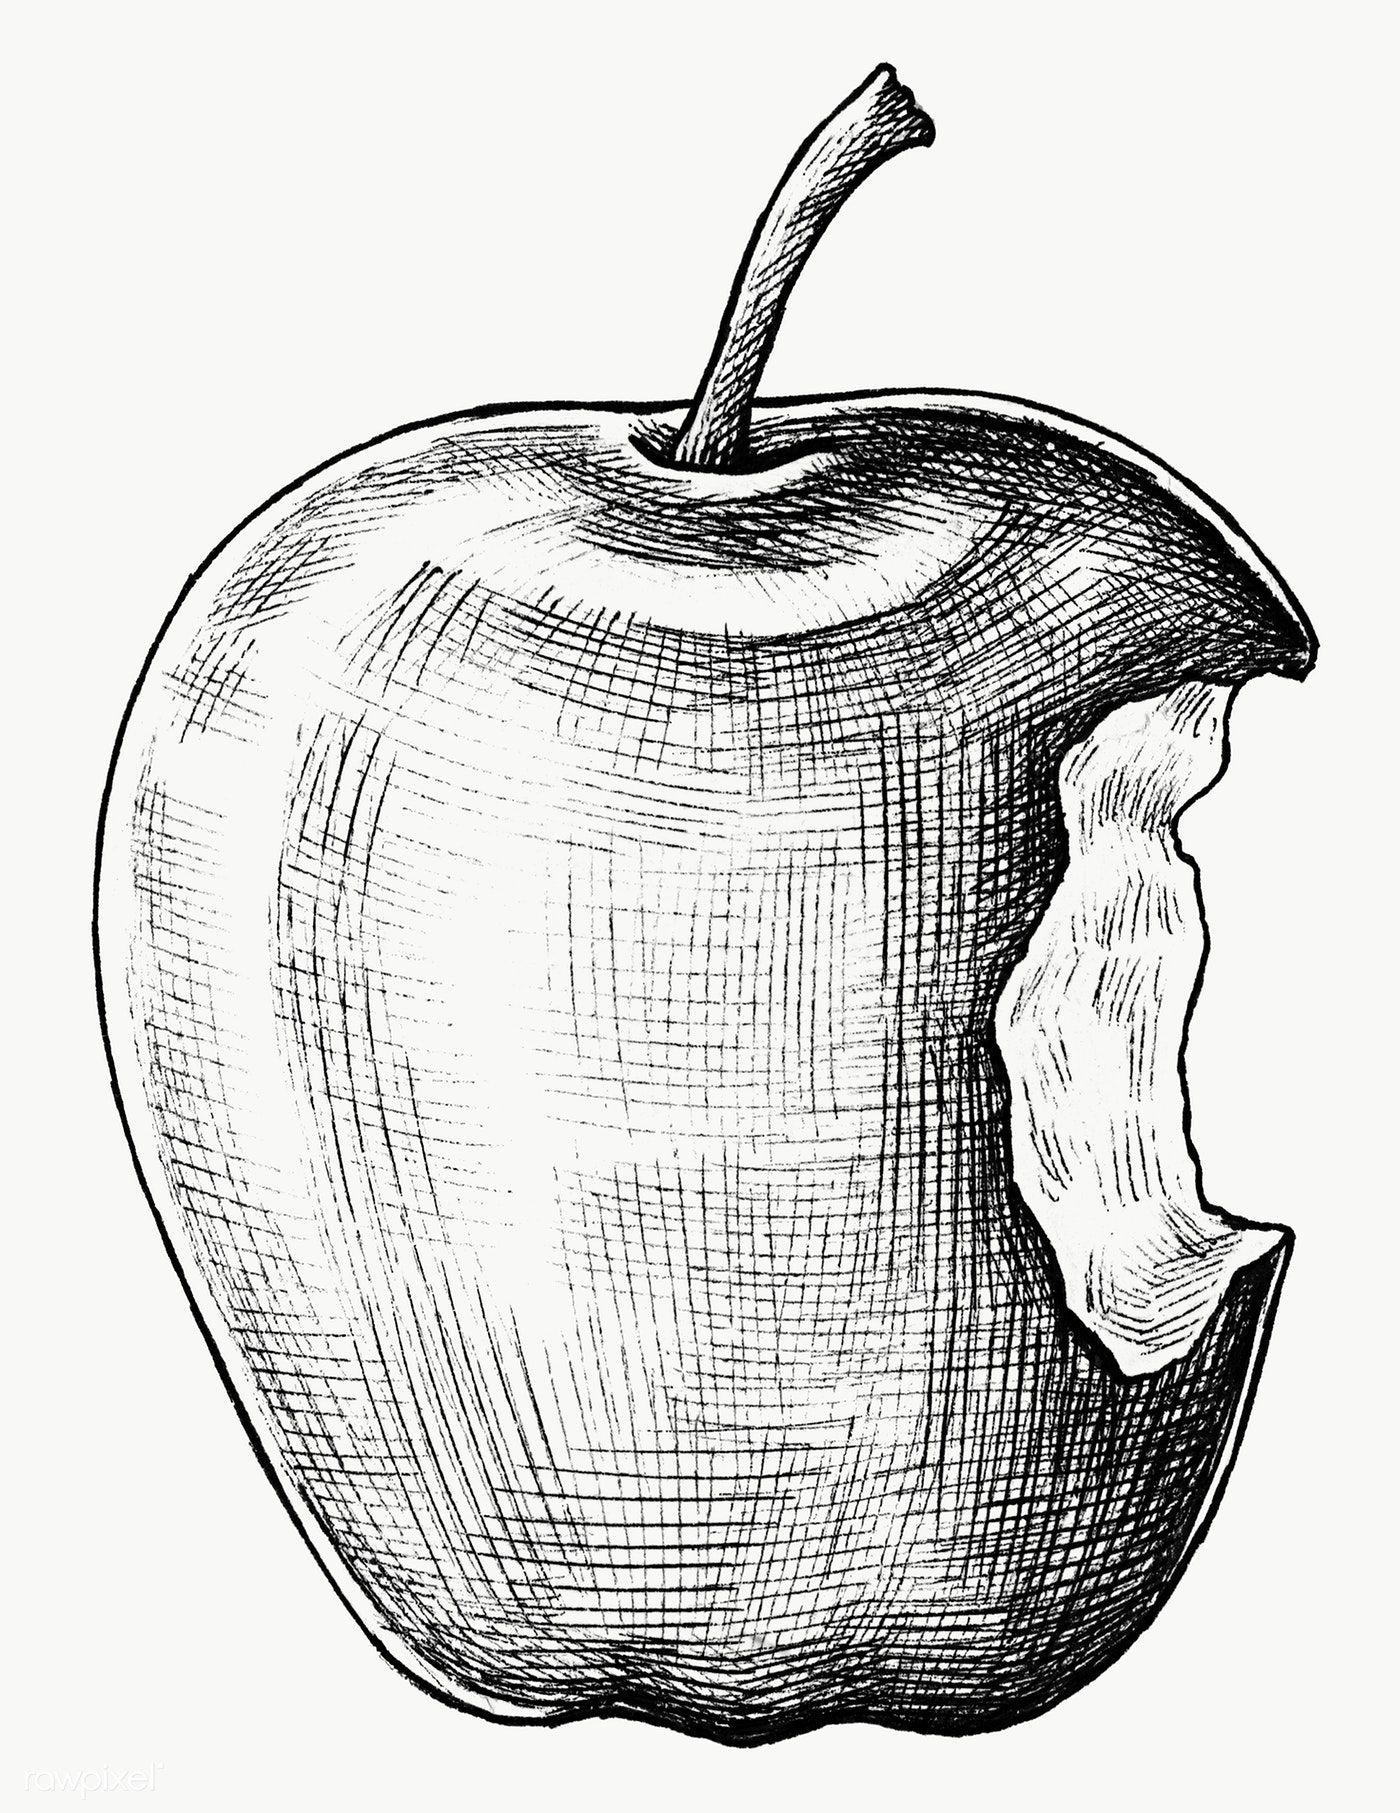 Hand Drawn Bitten Apple Fruit Transparent Png Free Image By Rawpixel Com Drawing Apple How To Draw Hands Apple Illustration